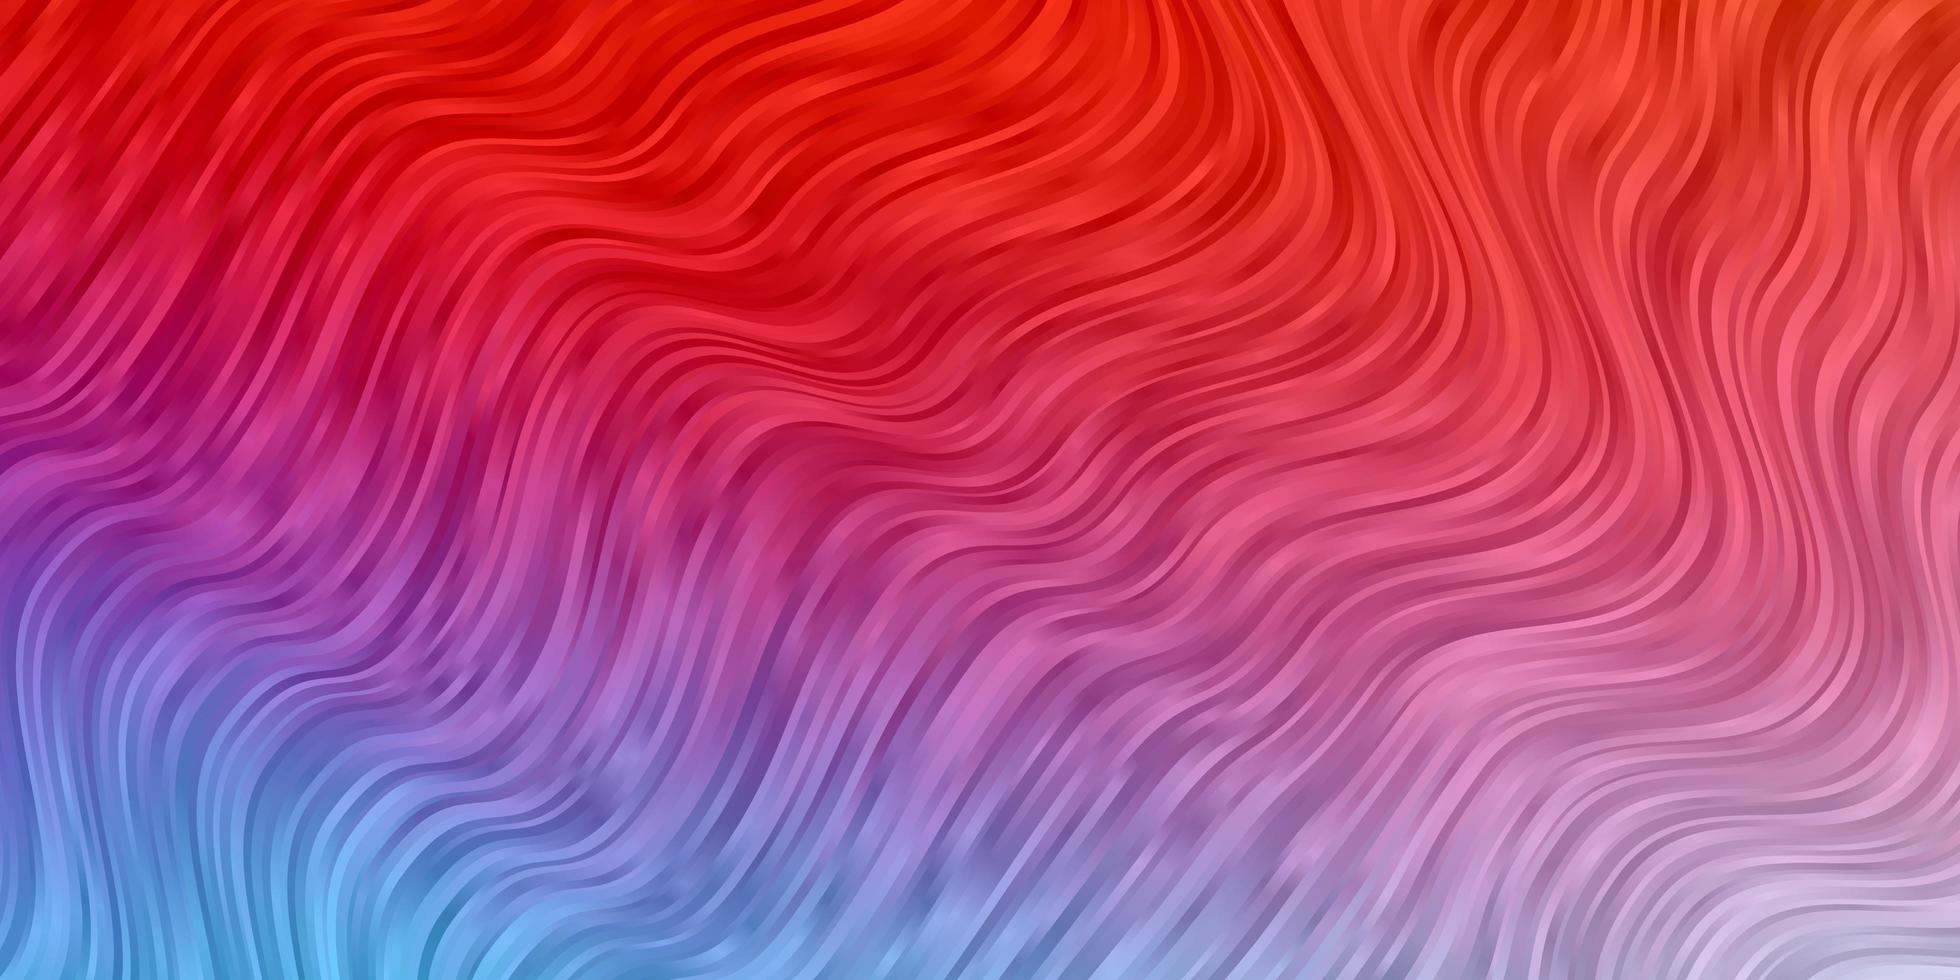 Blue and red background with bent lines. vector